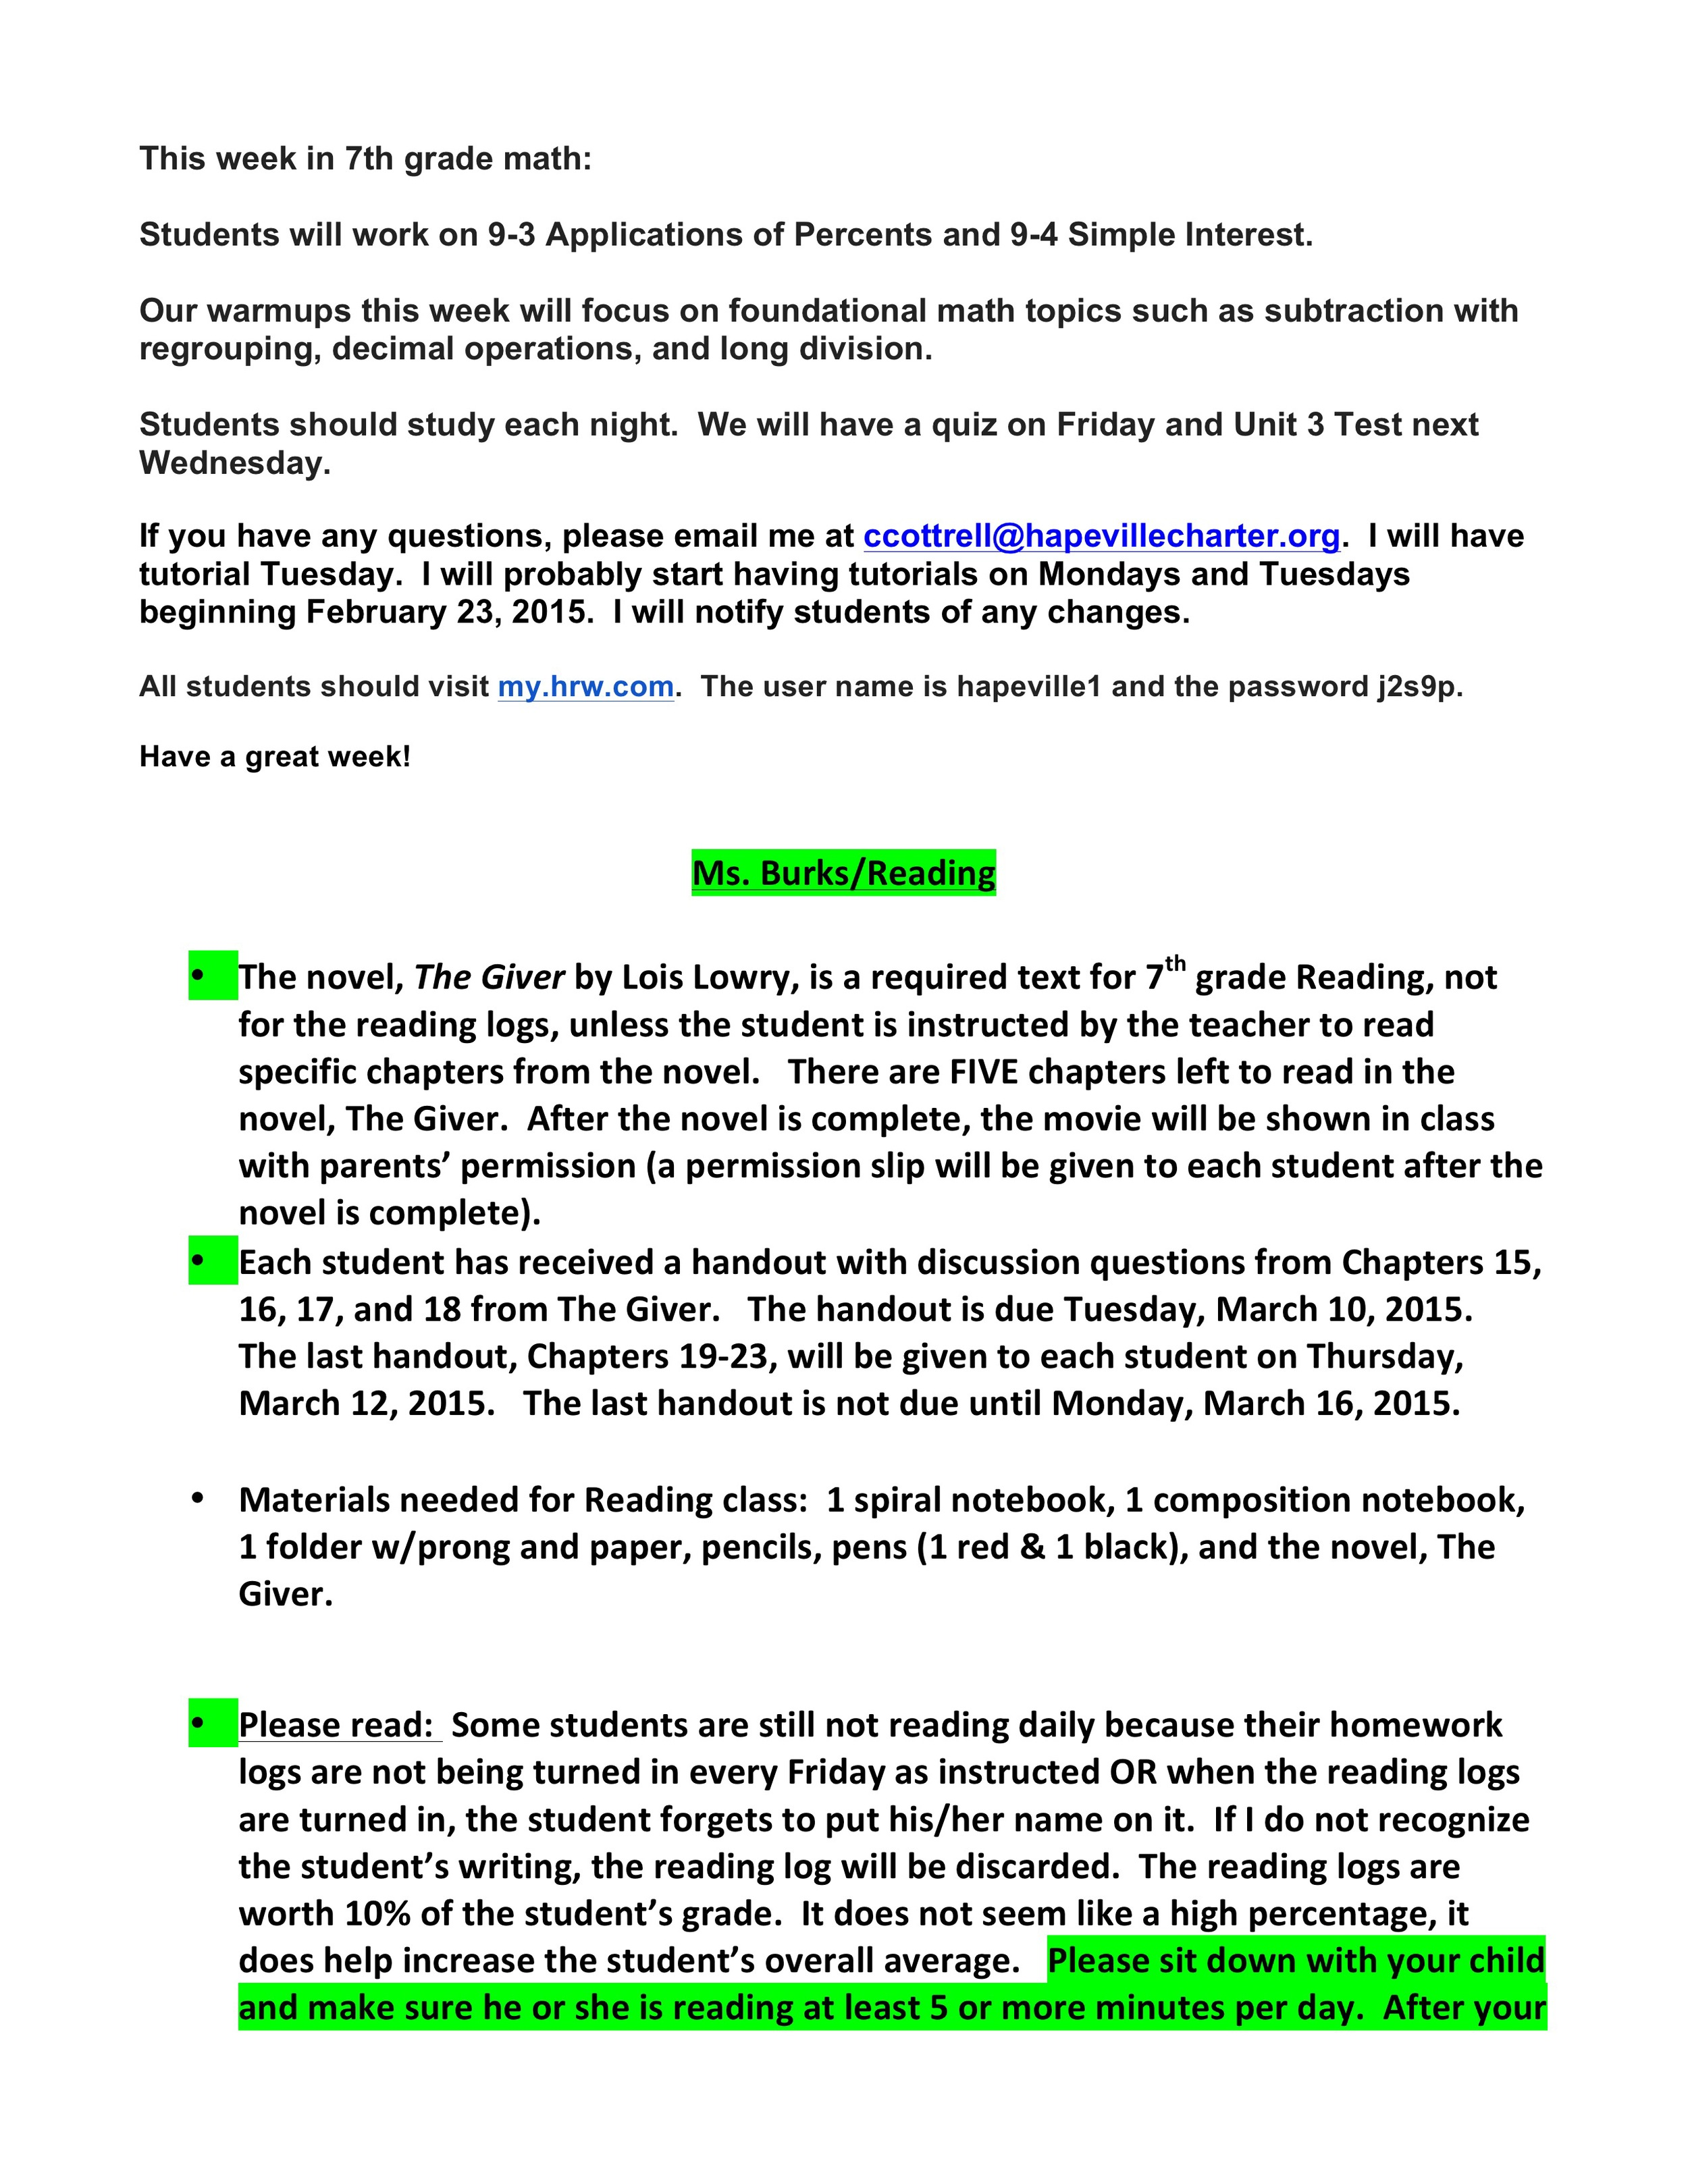 Newsletter Image7th grade march 9 - 13 2.jpeg